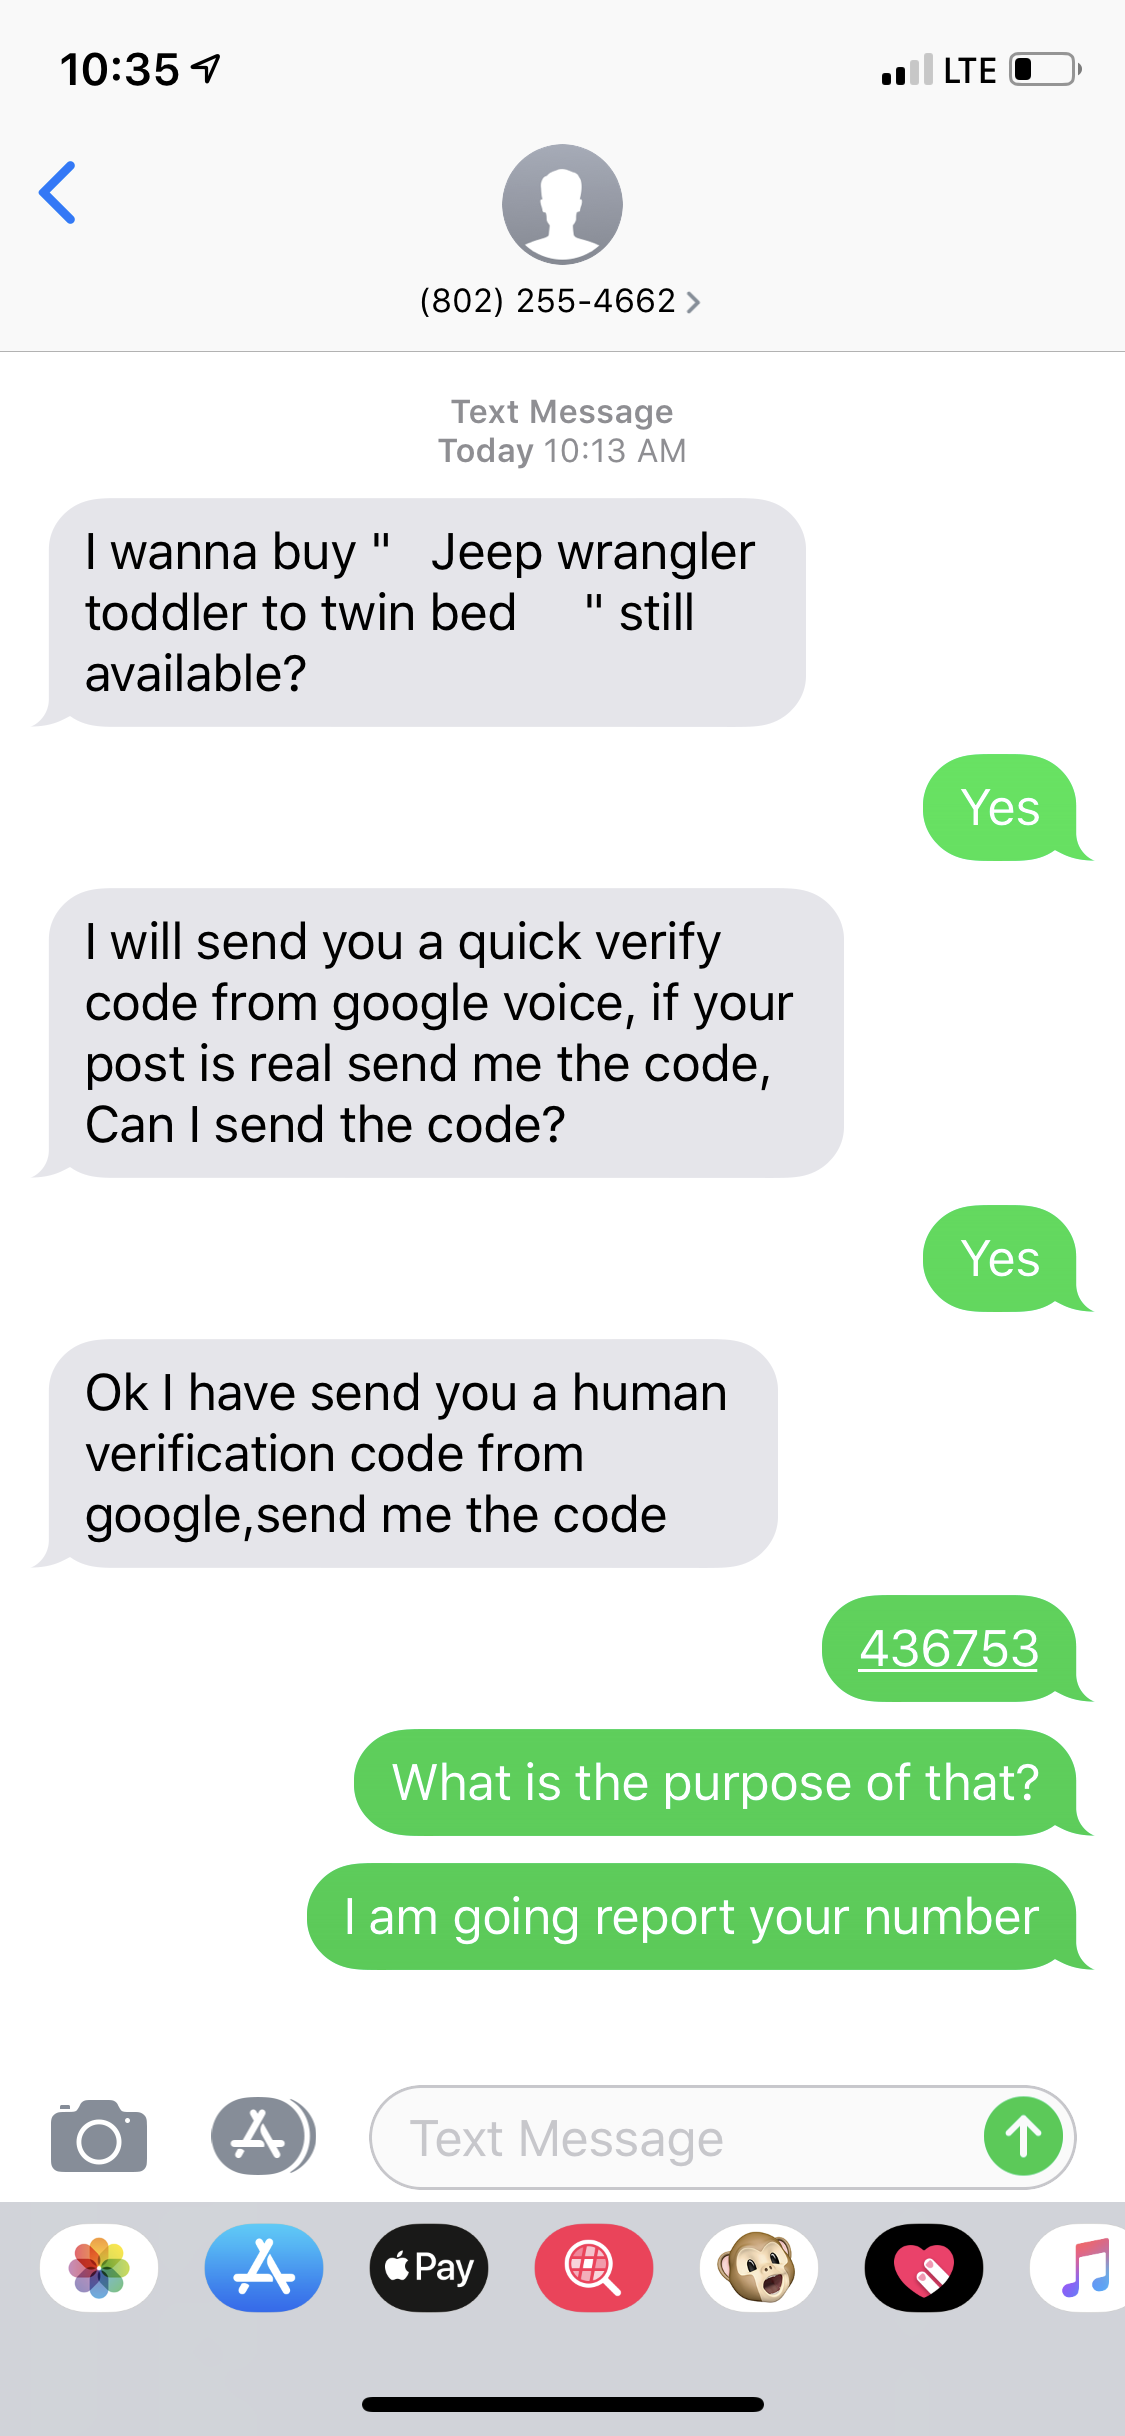 I post my a sale on Craigslist San Diego, and they text me